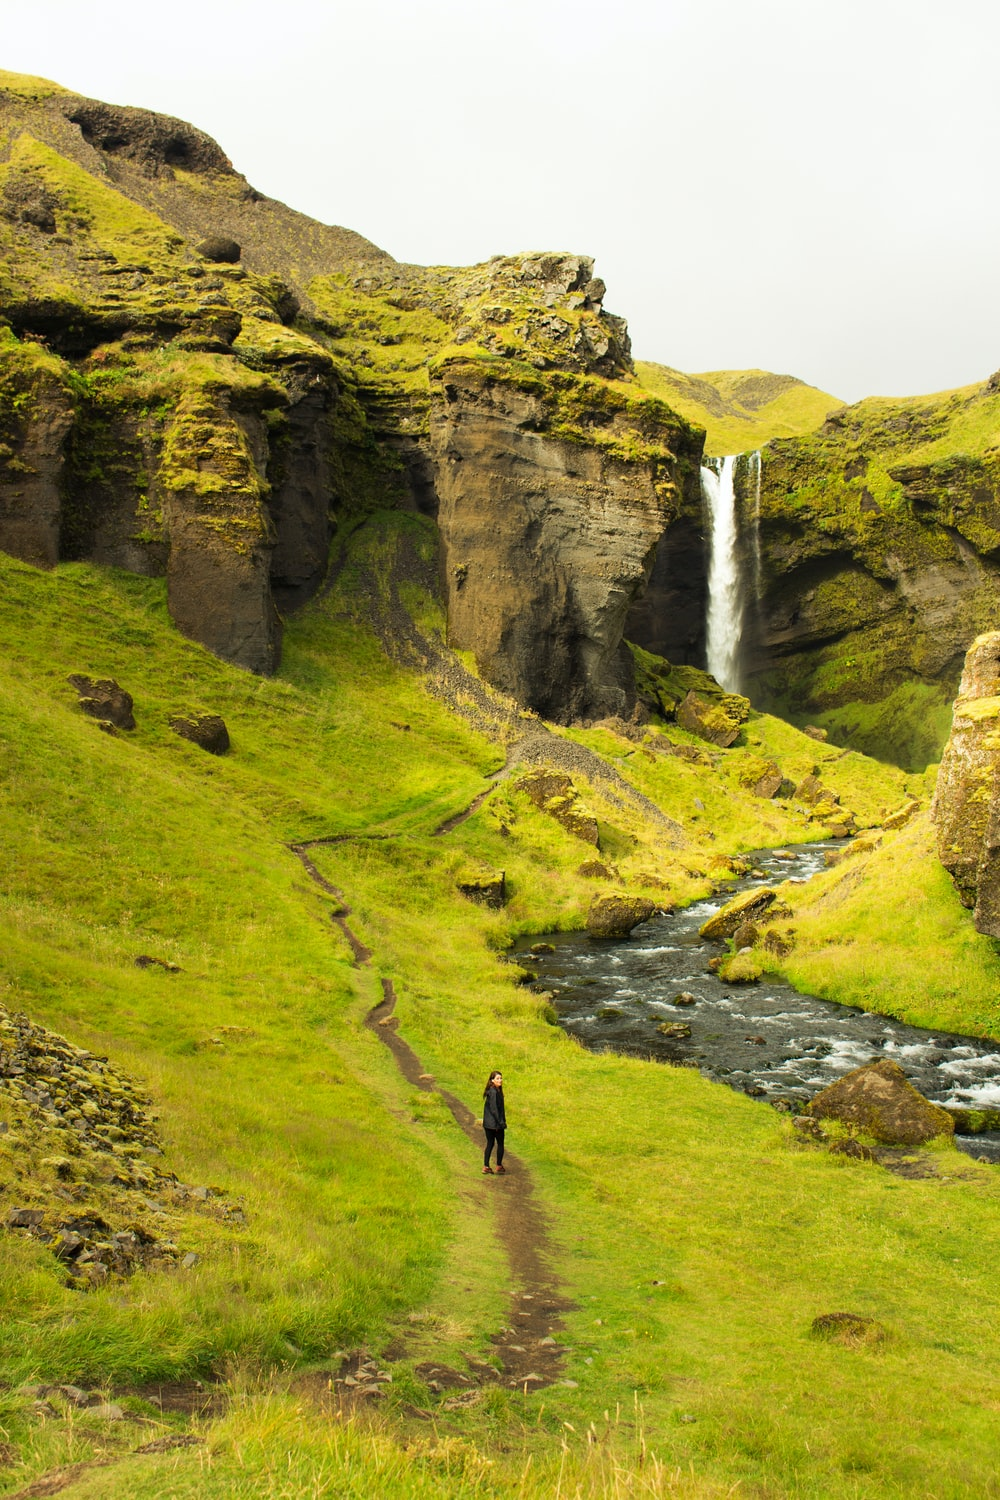 person walking on green grass field near waterfalls during daytime